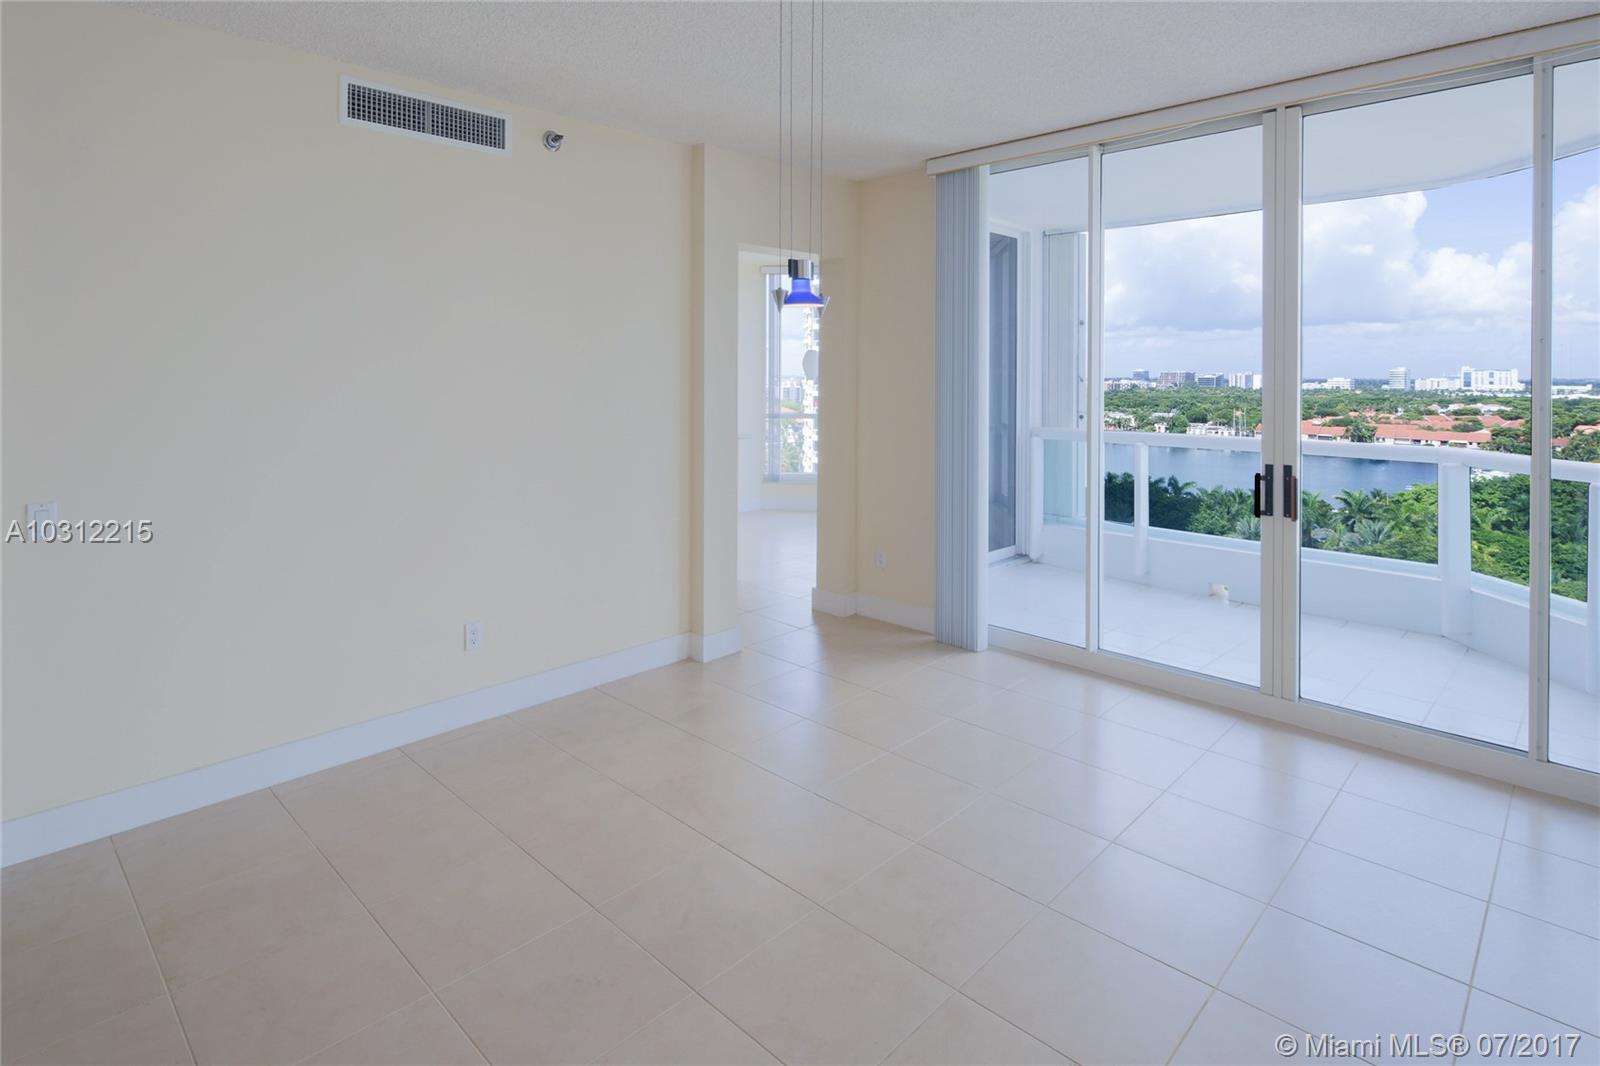 21150 Point Pl # 1205, Aventura , FL 33180